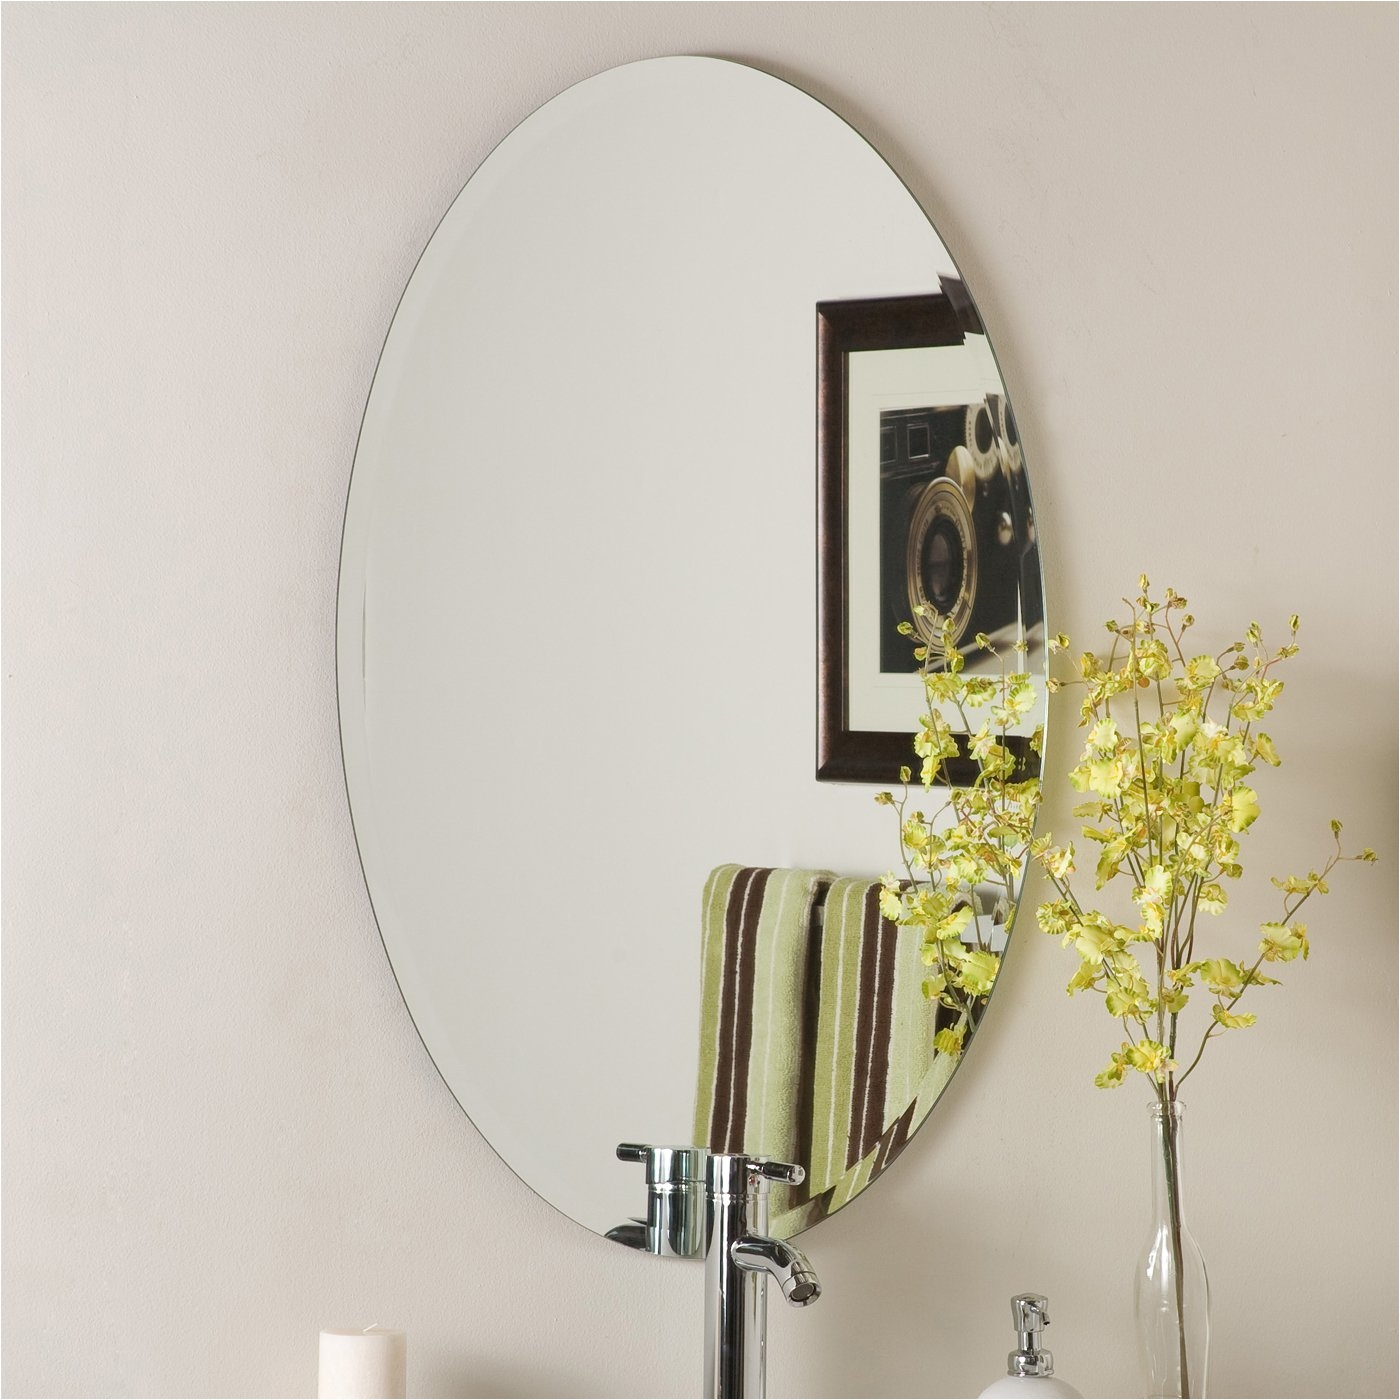 image of frameless beveled mirror decor